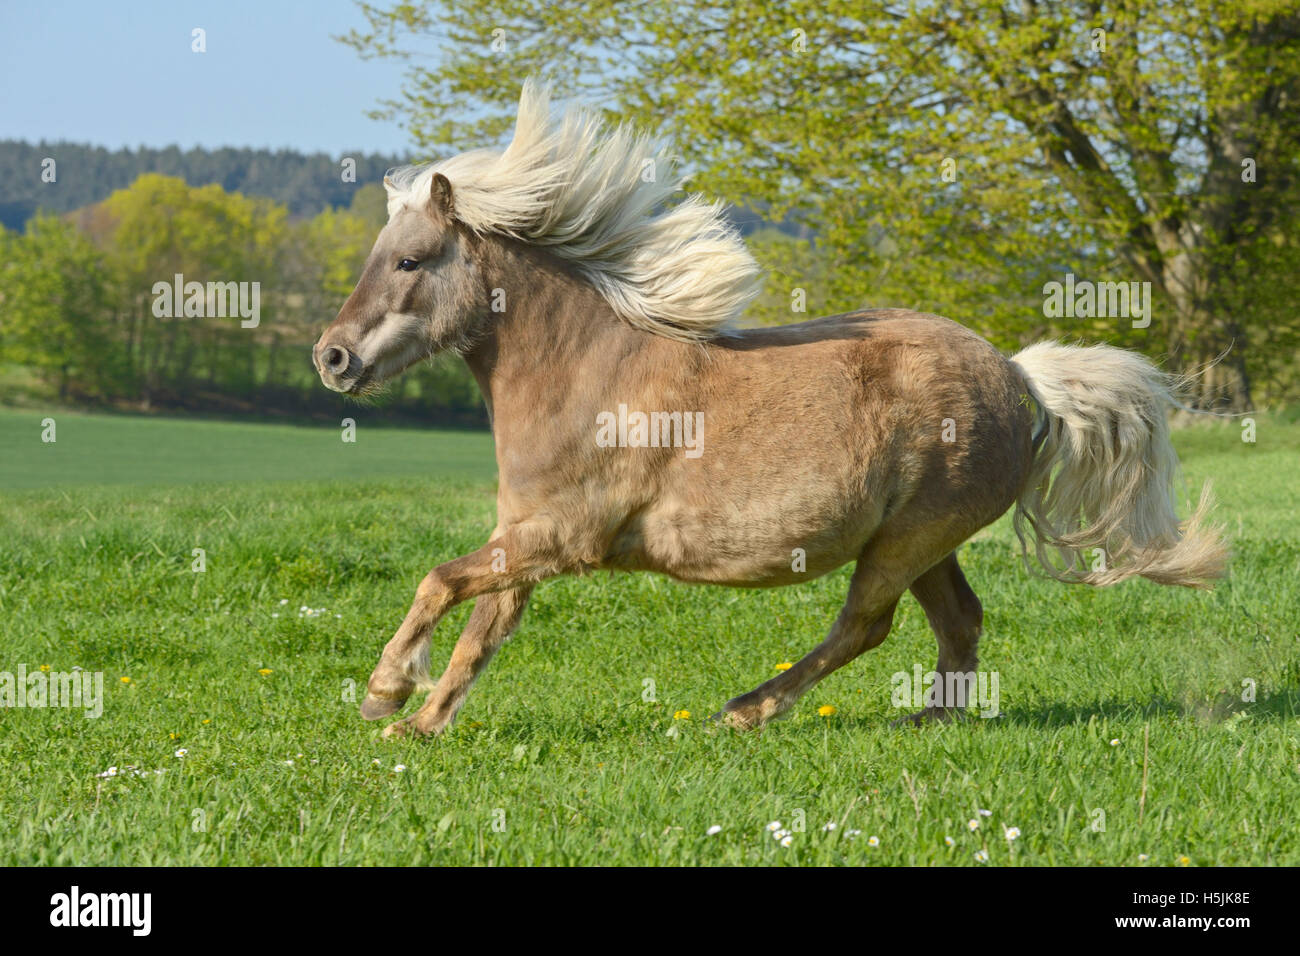 Classic Pony in the field - Stock Image